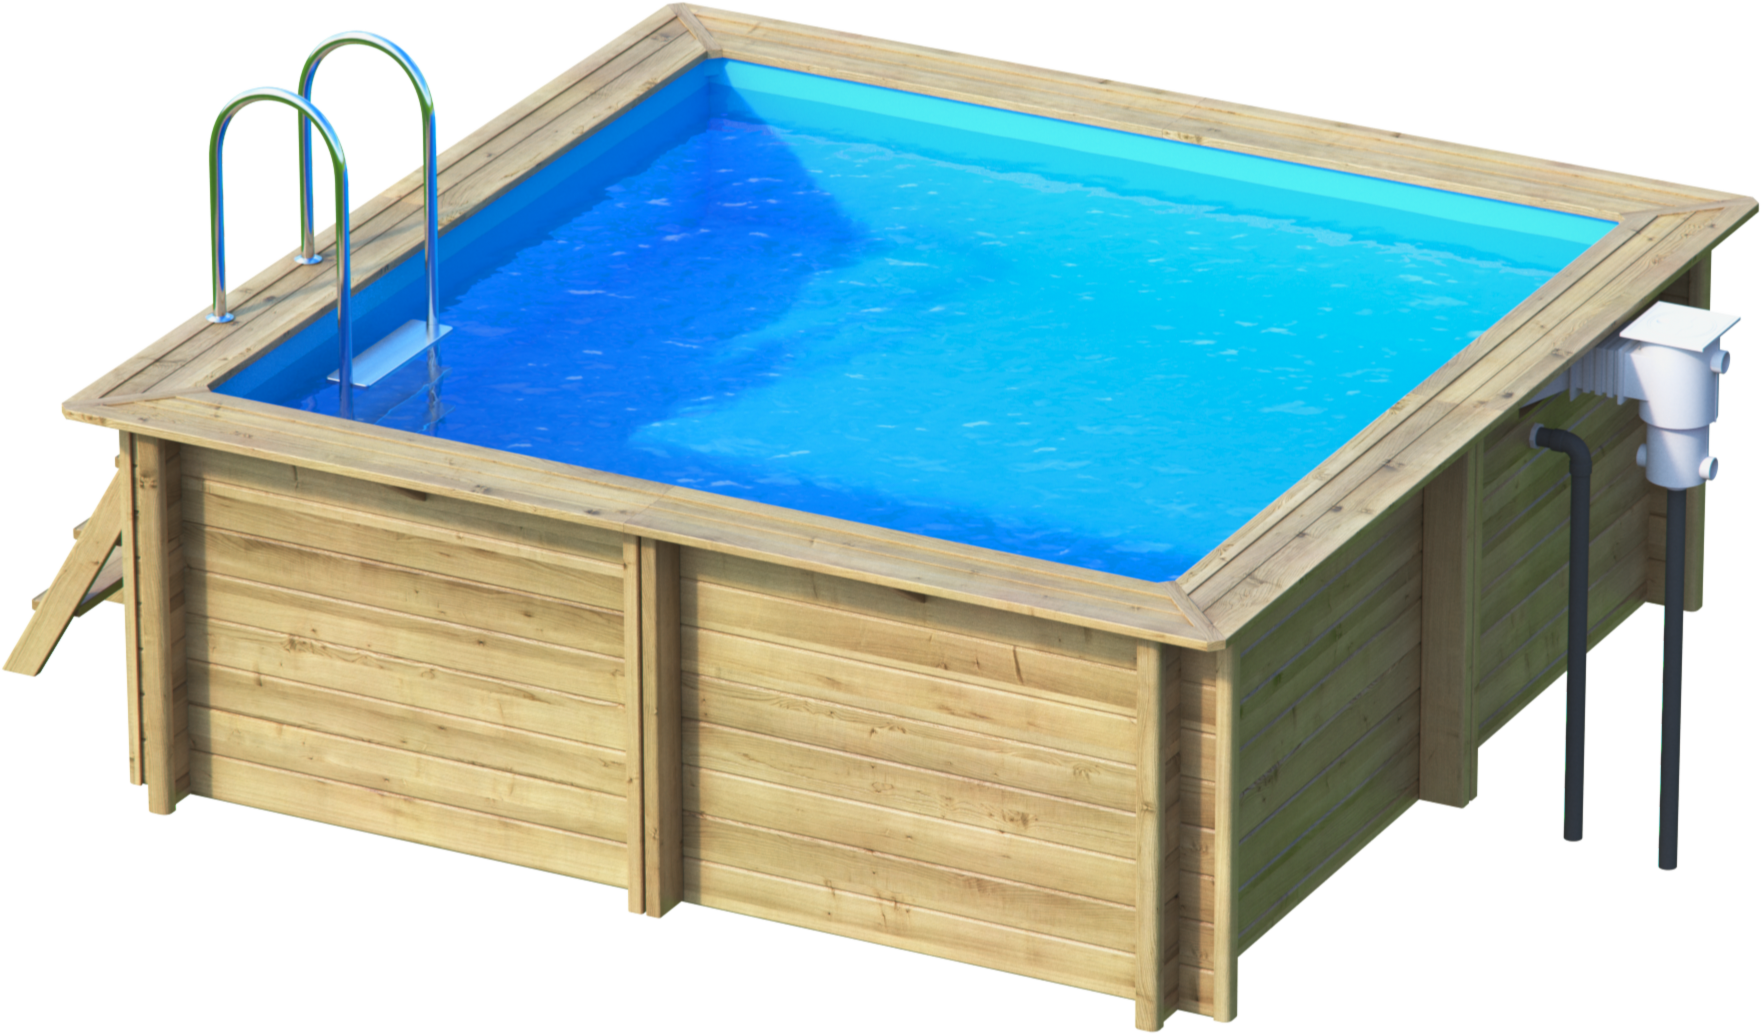 Weva carre 3x3 piscine bois weva par lpc for Coque piscine 3x3